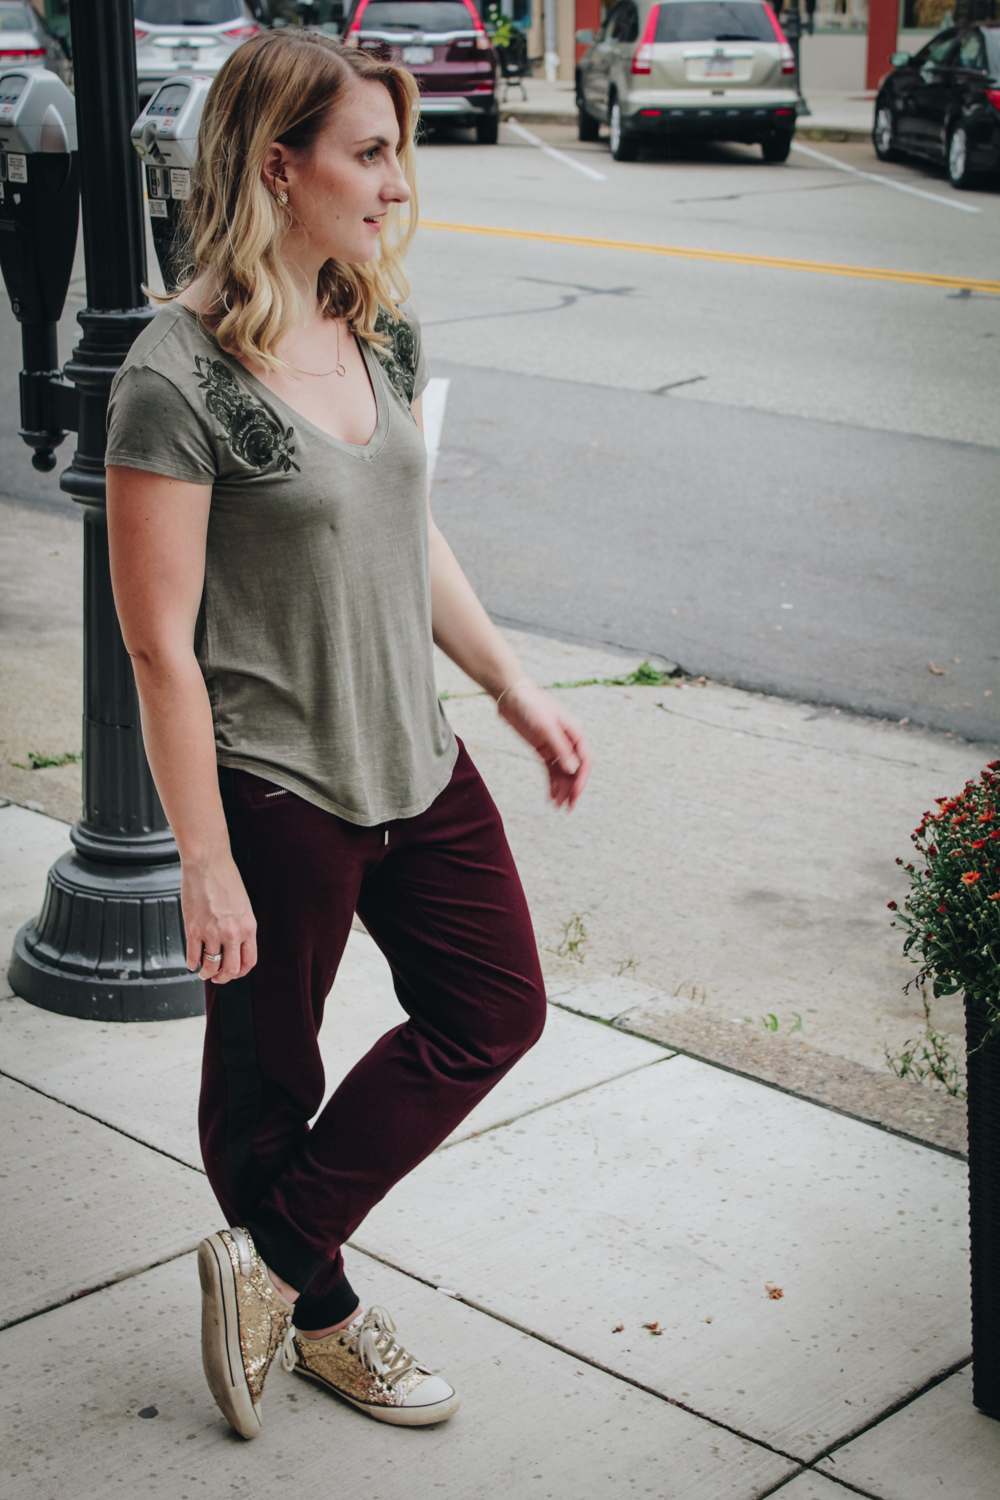 Fall fashion trend: Allyn Lewis styles a casual outfit with jogger pants for women